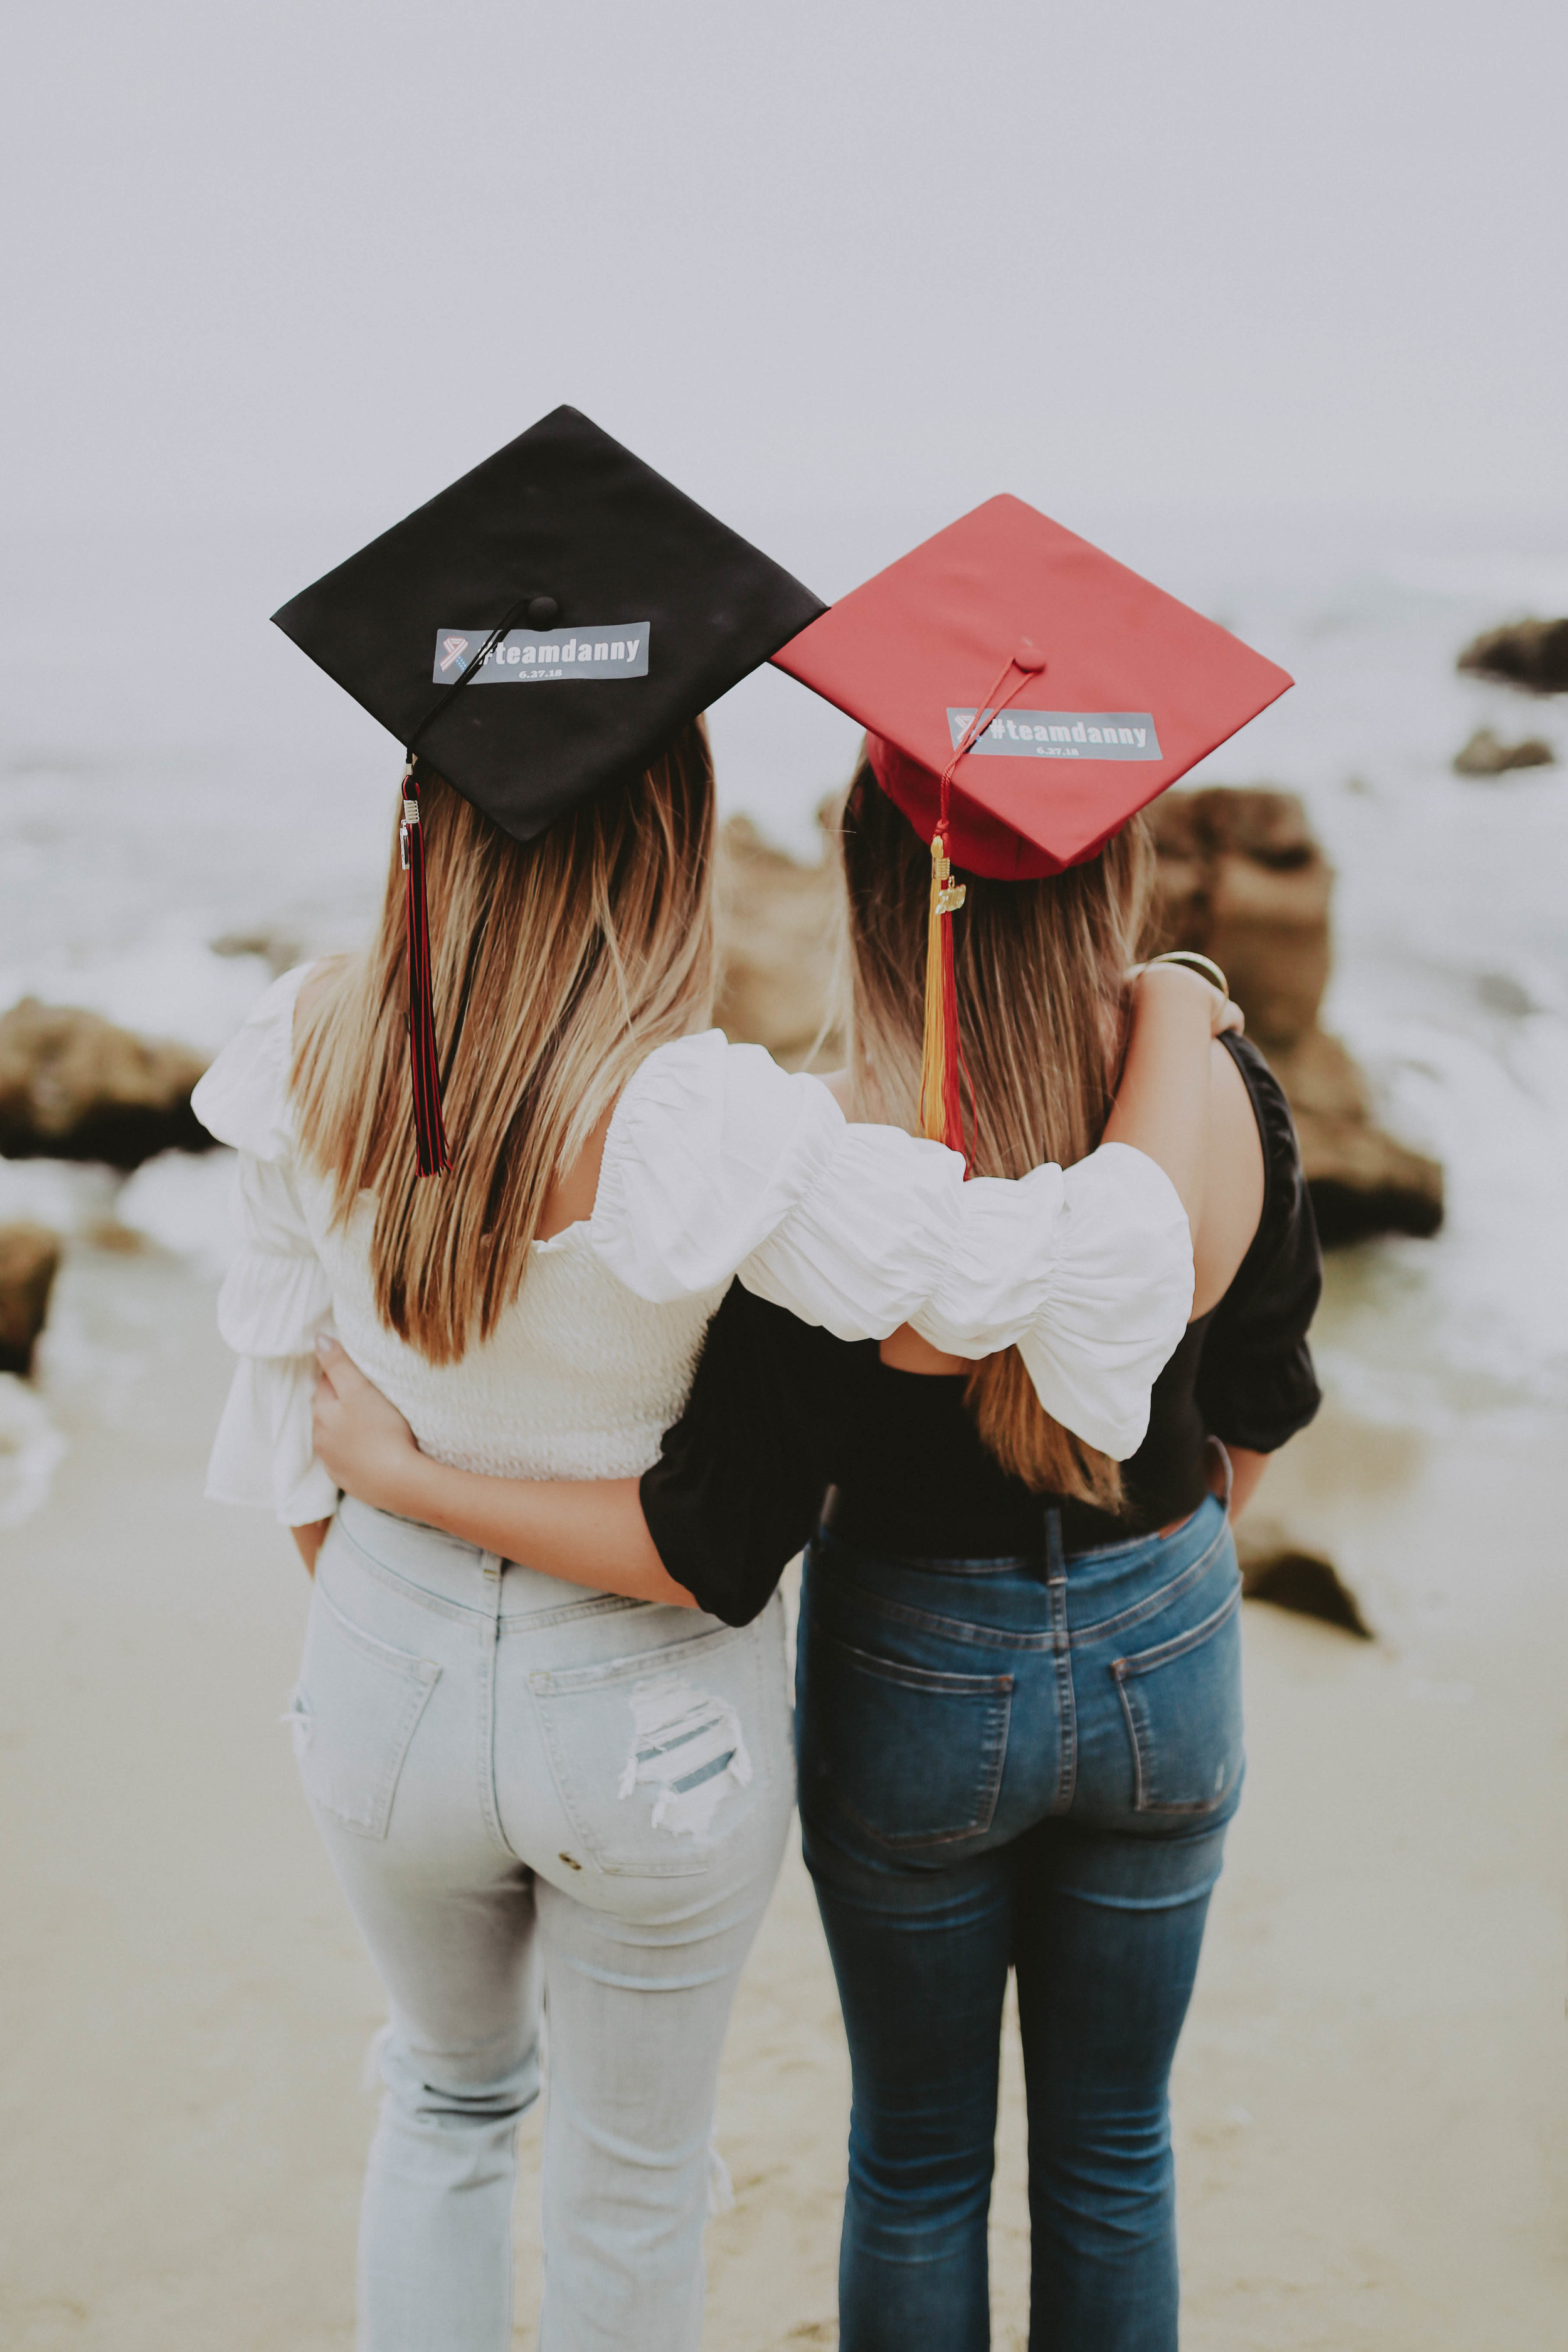 The Kirby girls sporting their #TeamDanny stickers on their graduation caps in honor of their late father, Danny Kirby.